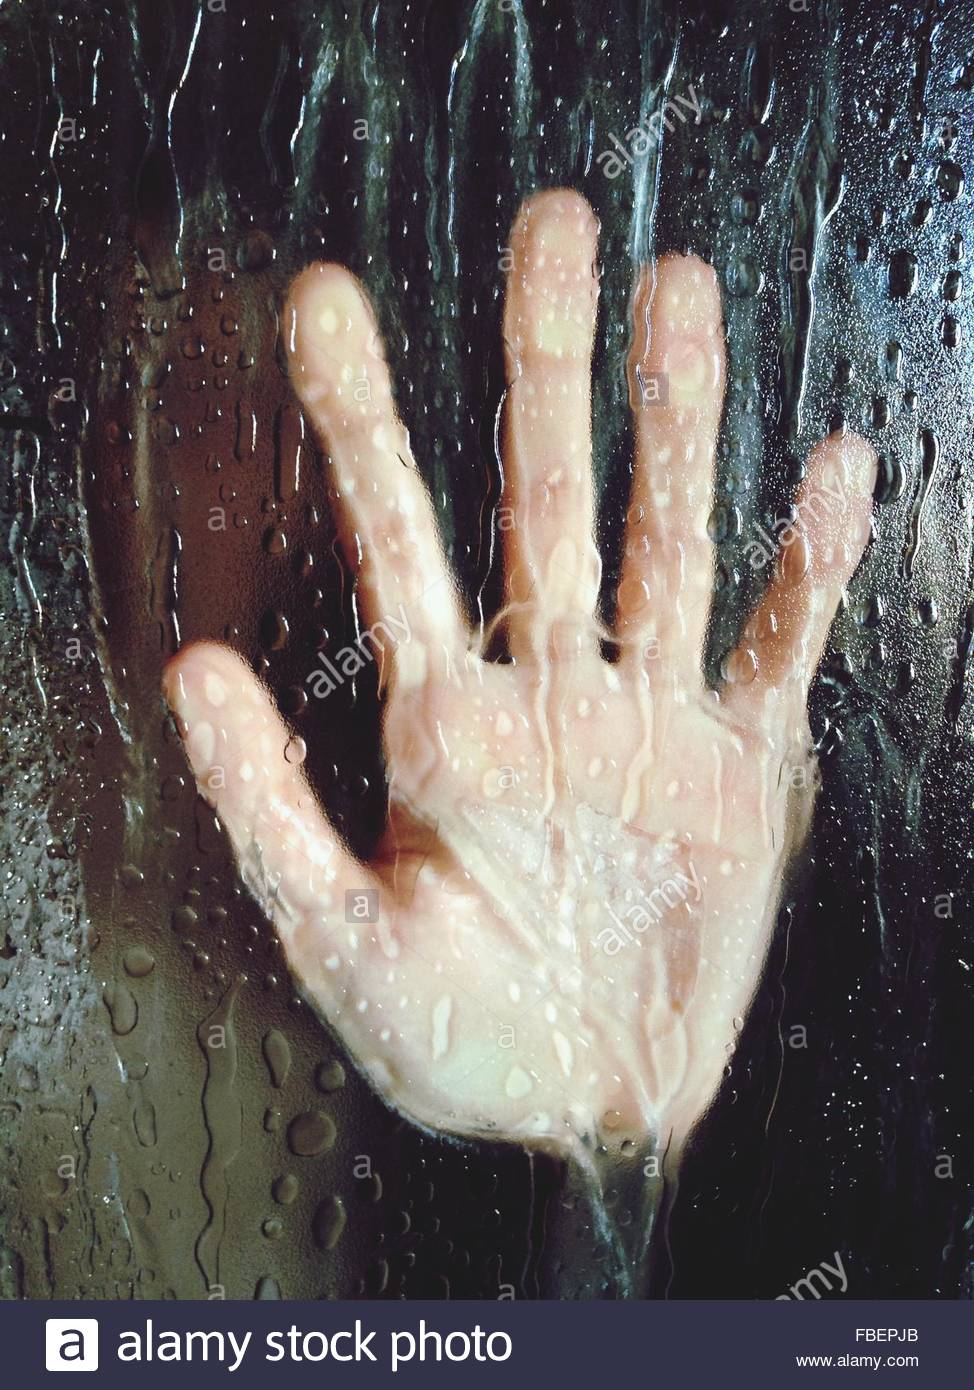 Close-Up Of Hand On Wet Glass - Stock Image